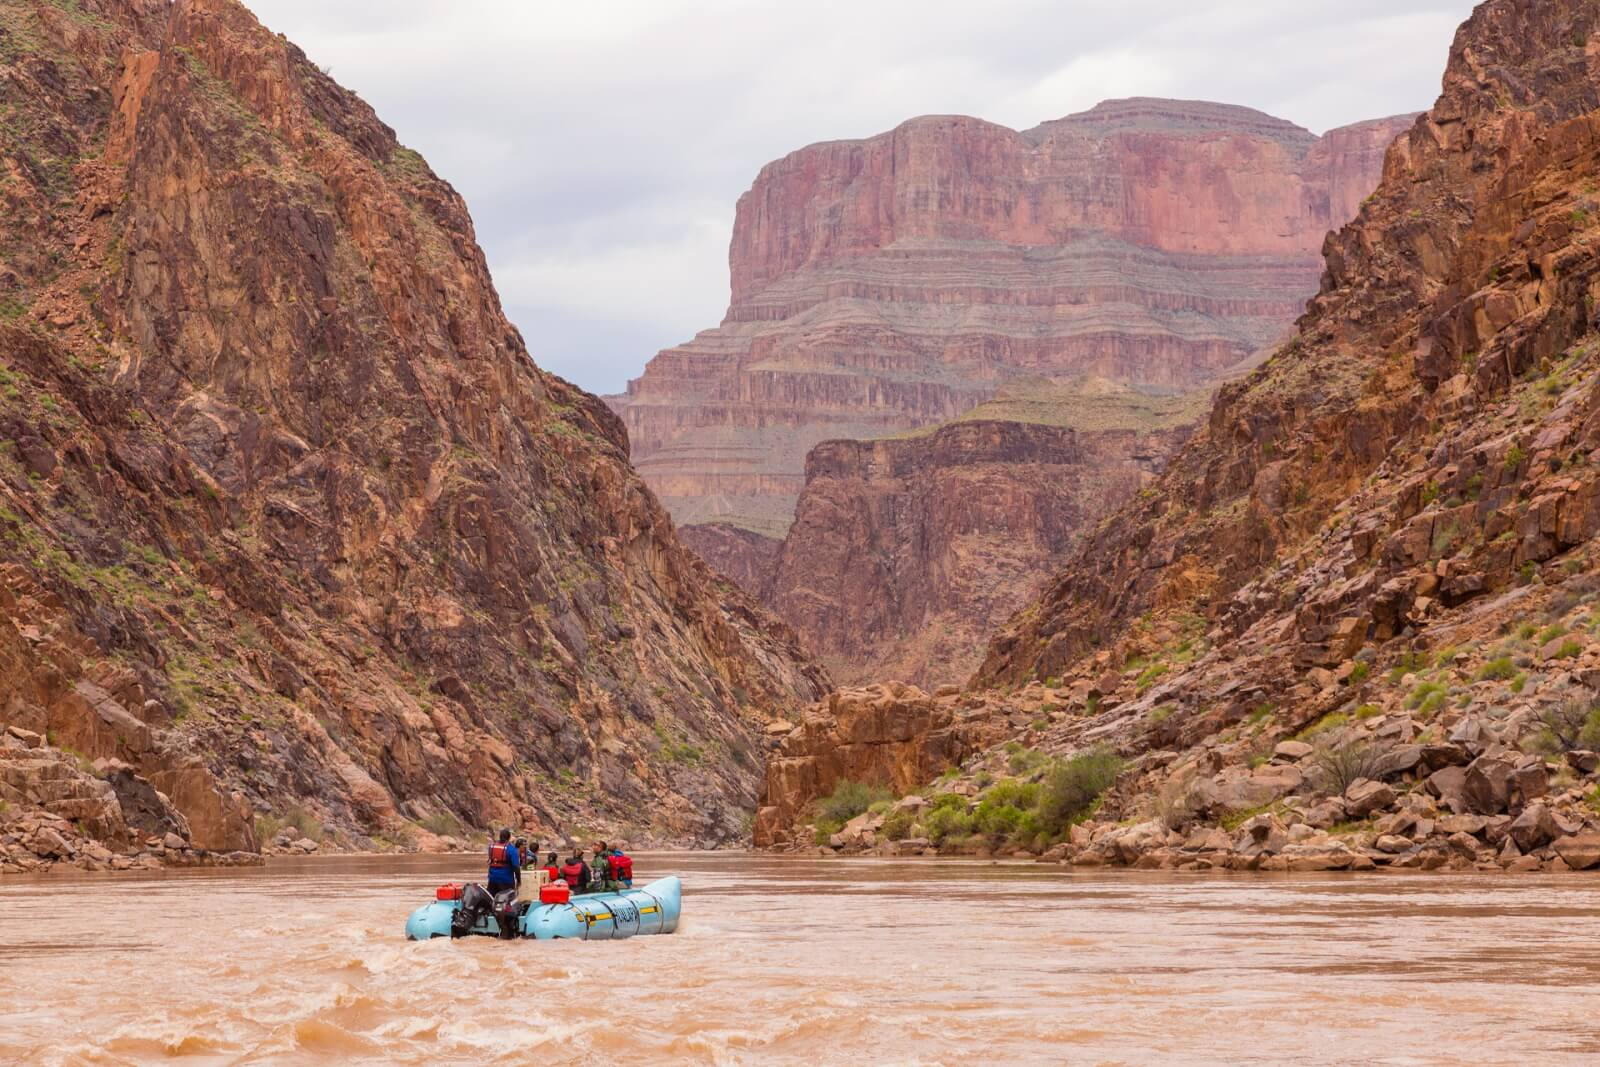 A small group of river rafters look at the canyon walls along the Colorado River